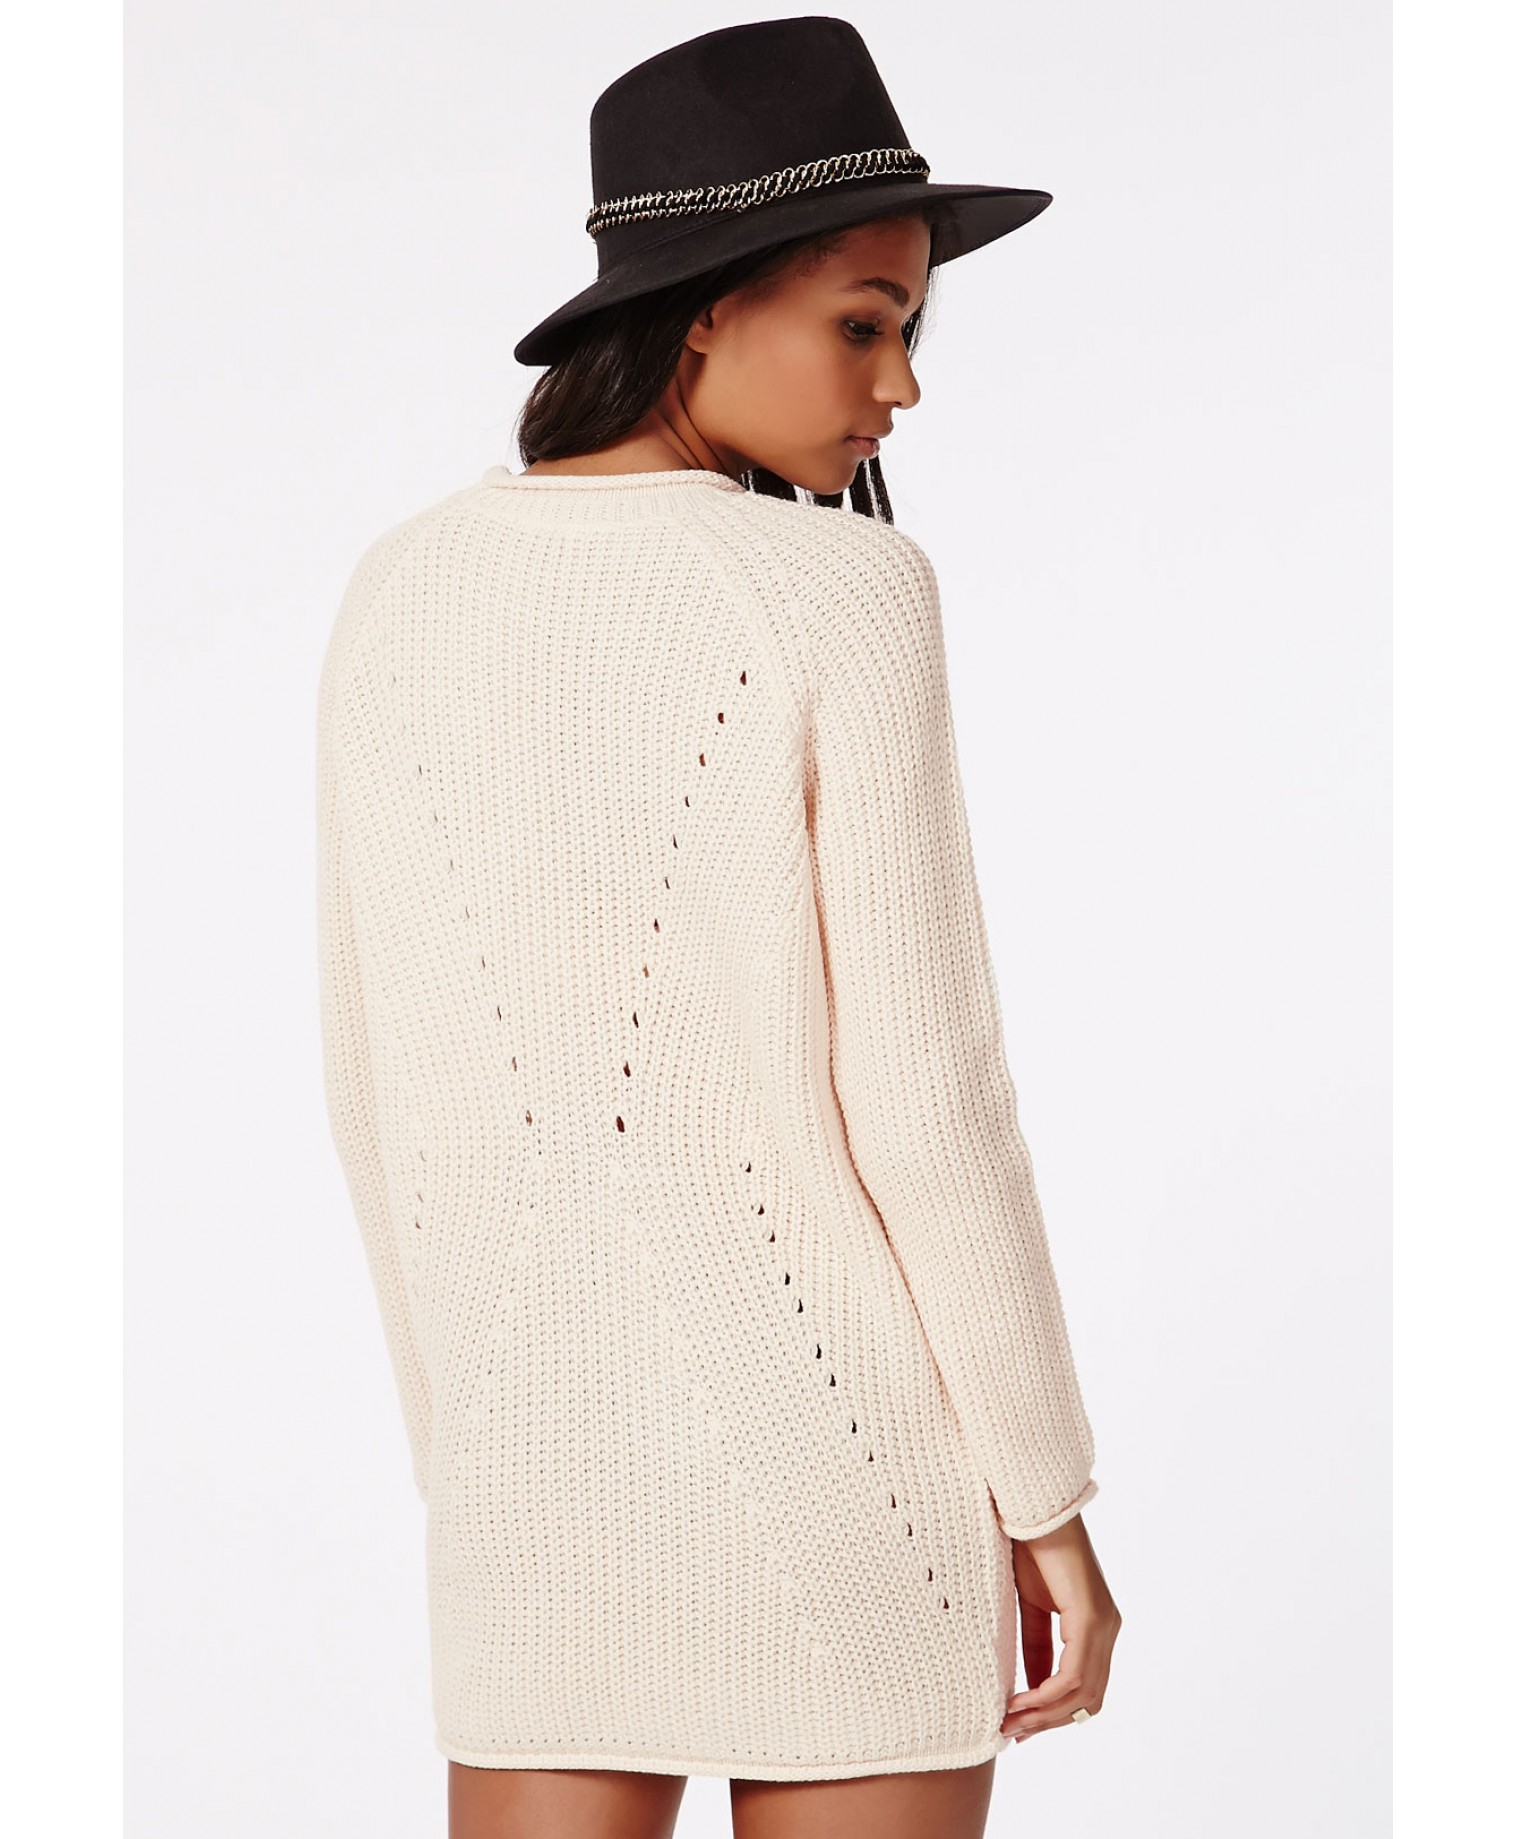 831fc959ed Missguided Ashlie Knitted Sweater Dress Vanilla in White - Lyst